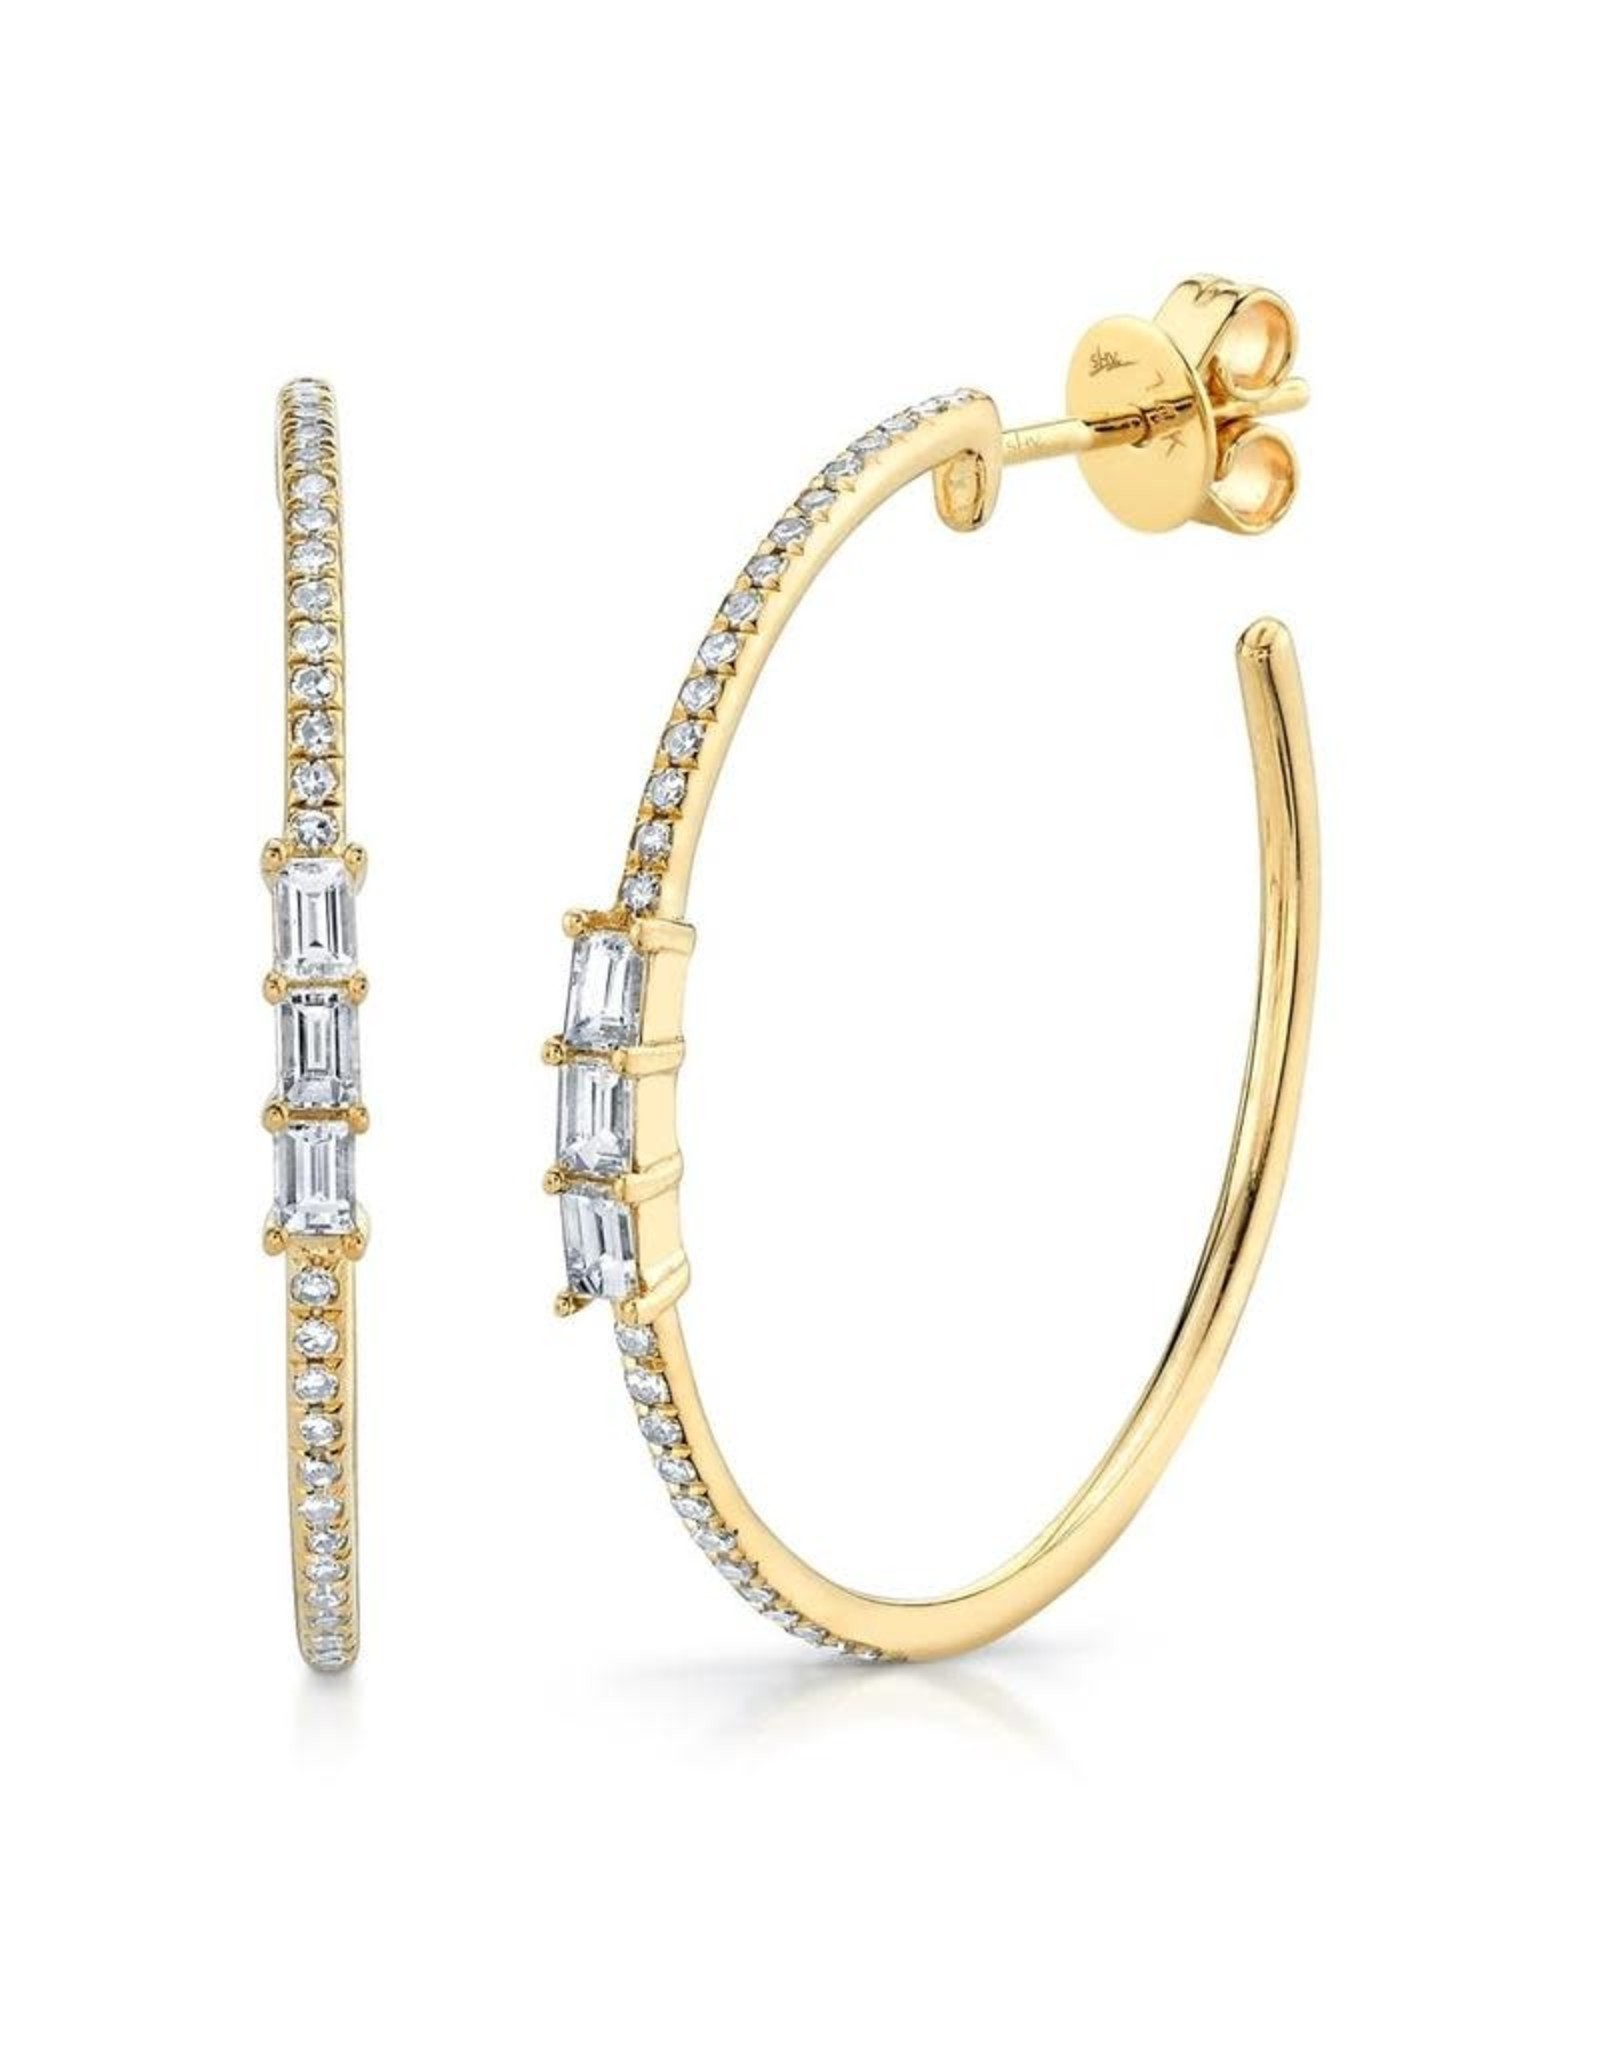 14K Yellow Gold Diamond Baguette Hoops Earrings, D: 0.39ct